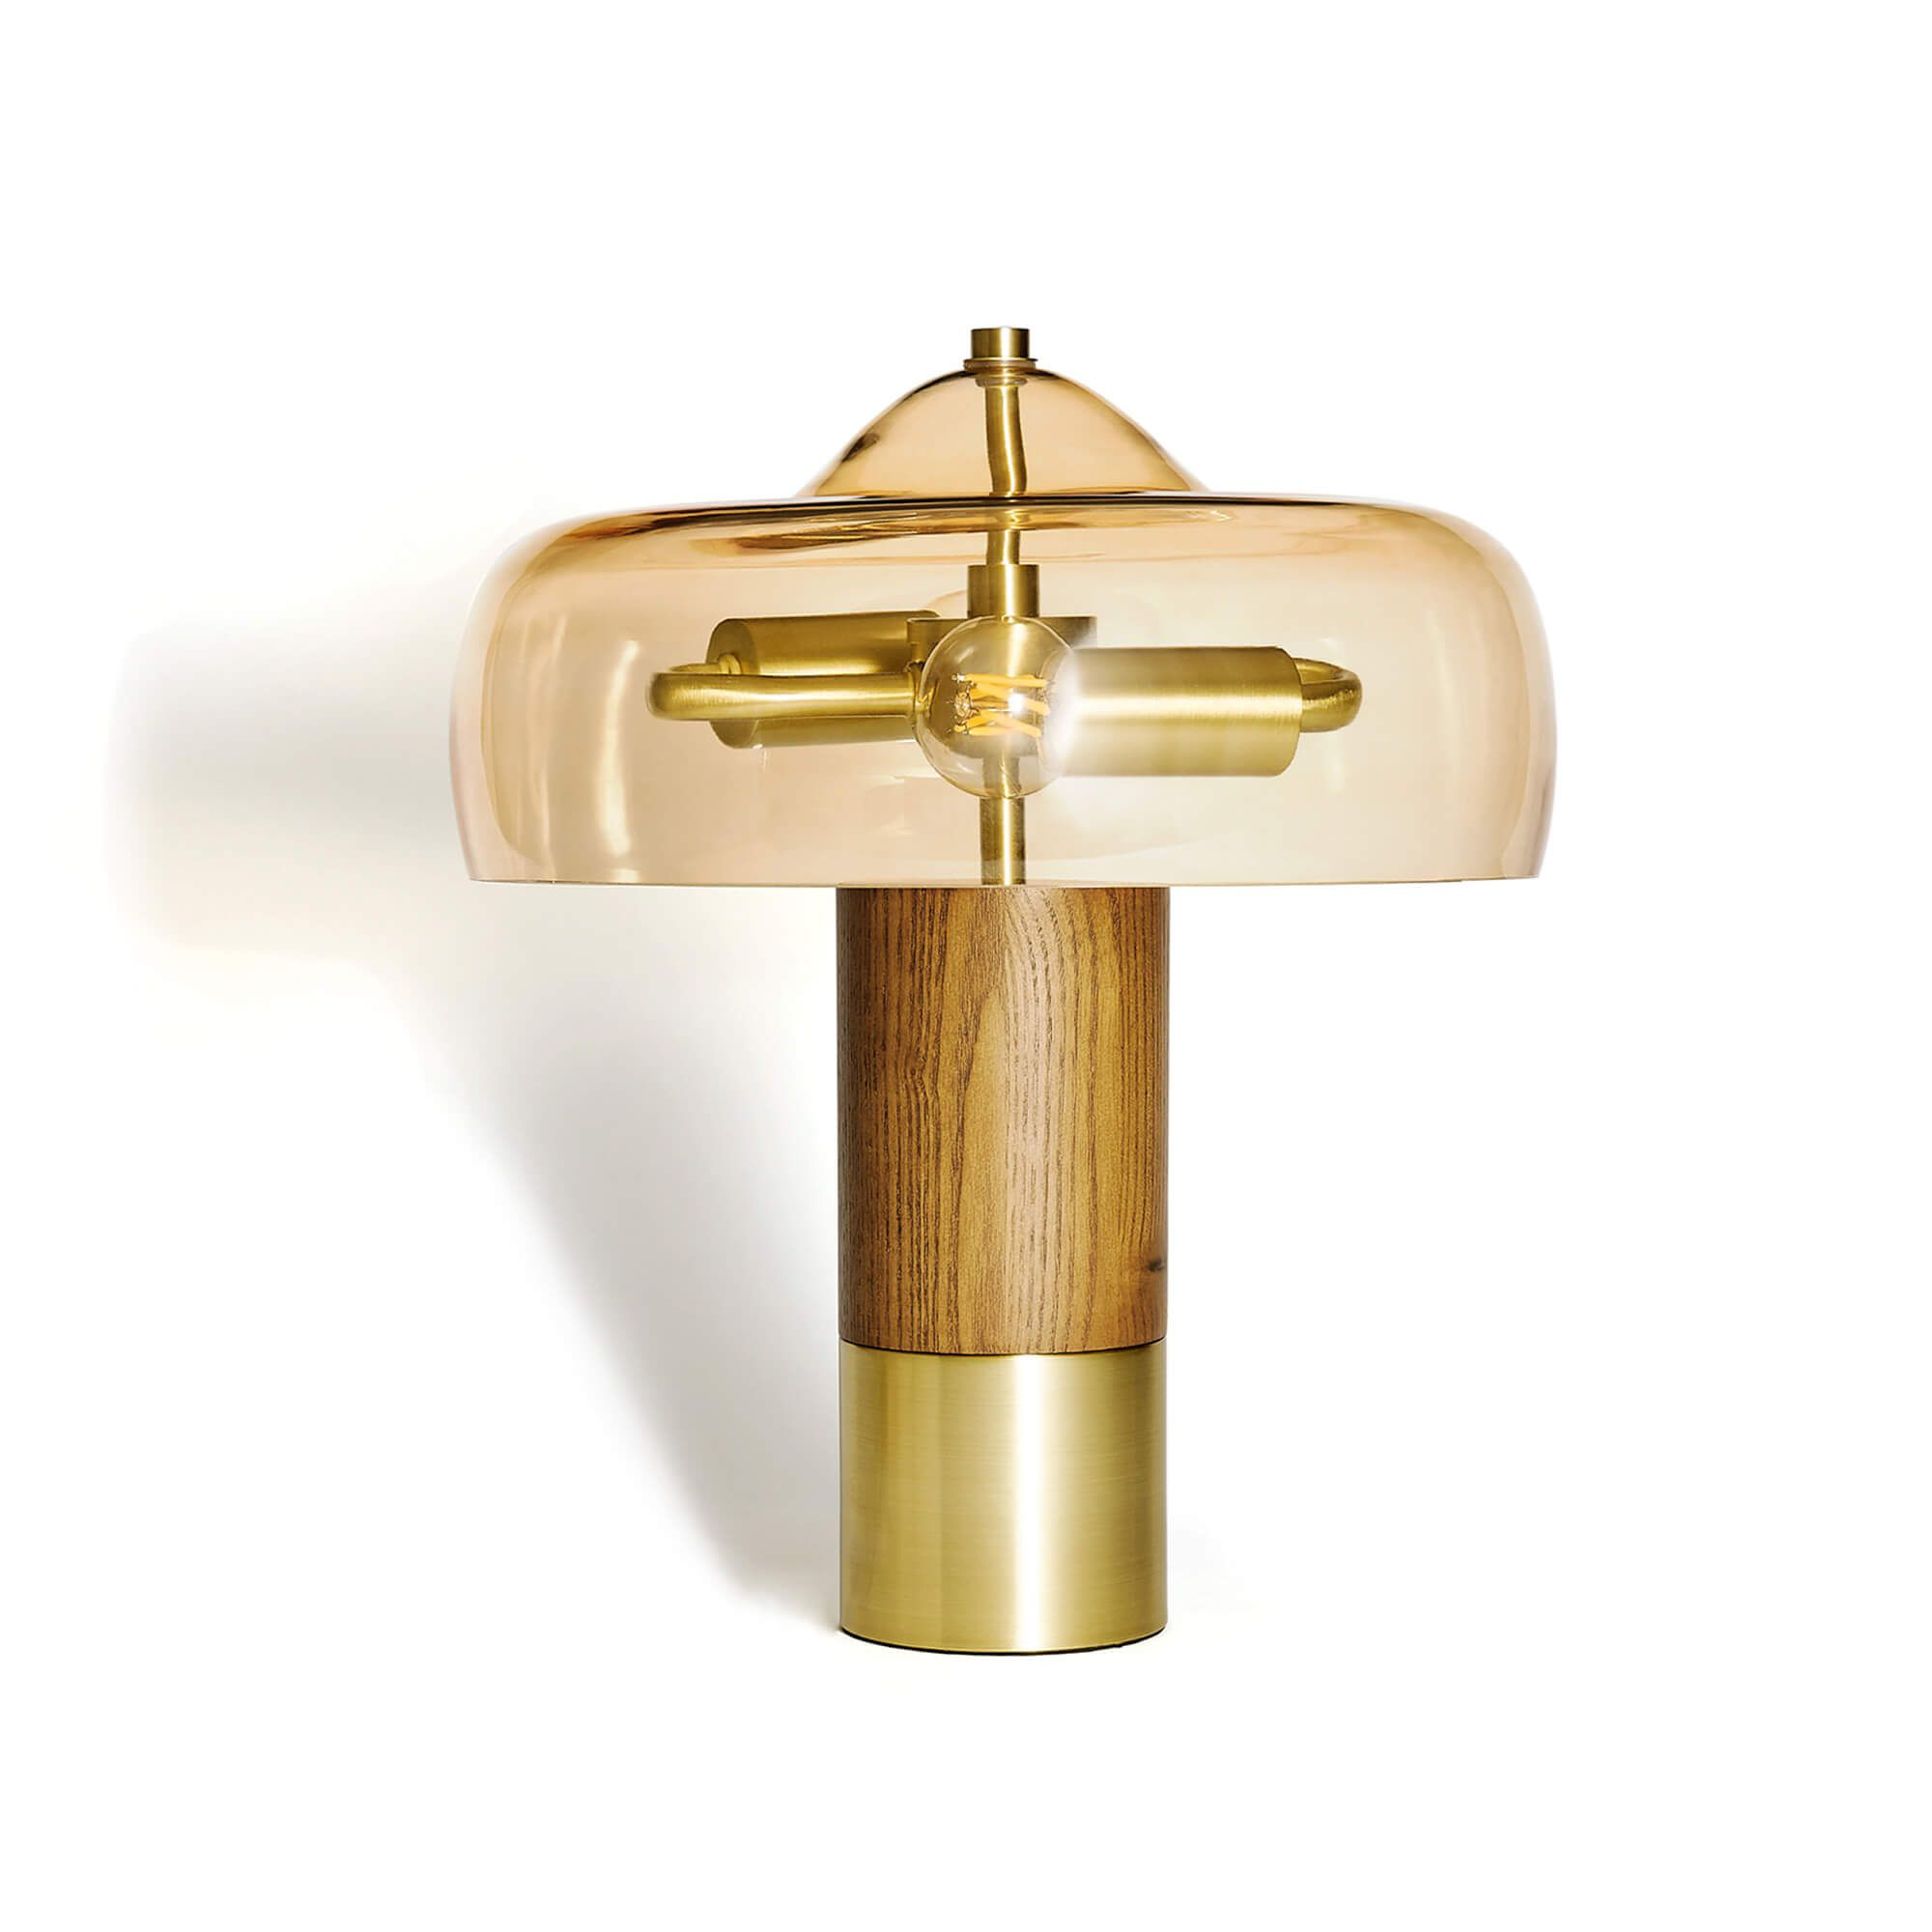 A midcentury style table lamp with a smoked glass shade, Edison bulb, and wood base.